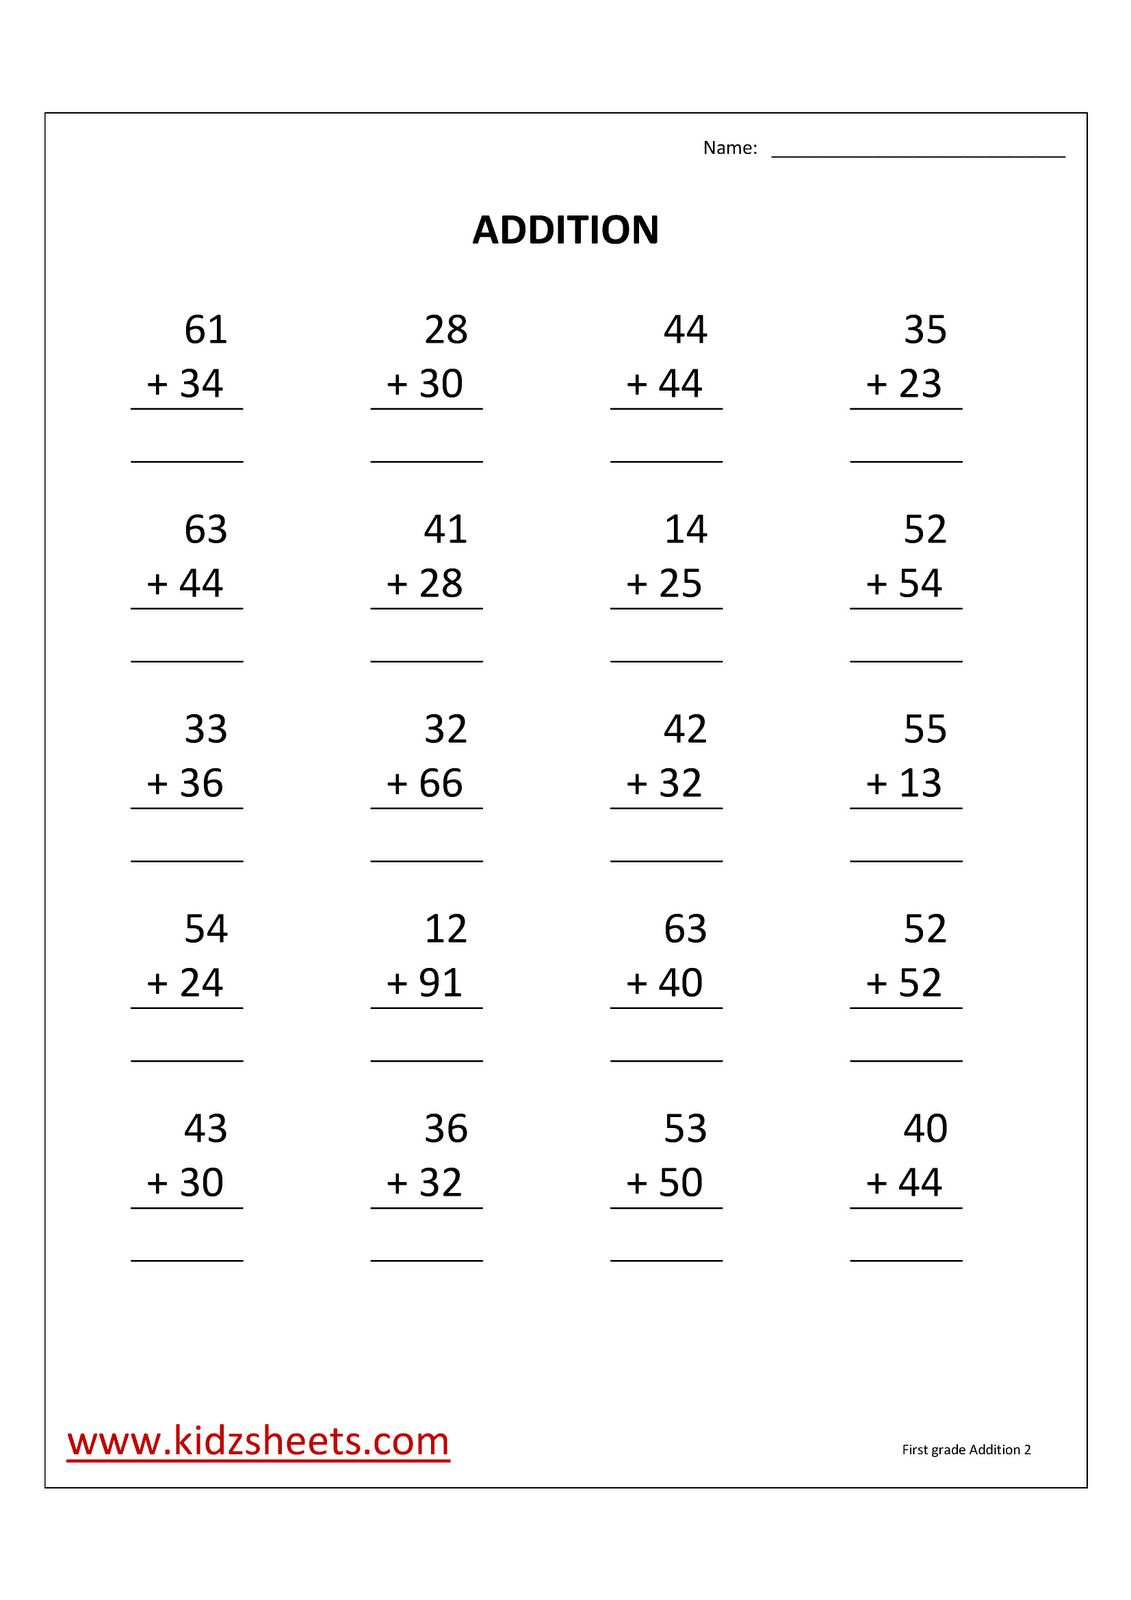 2 2nd Grade Math Worksheets 2 Digit Addition First Grade Math Addition Worksheets 2nd Grade Math Worksheets Math Addition Worksheets 1st Grade Math Worksheets